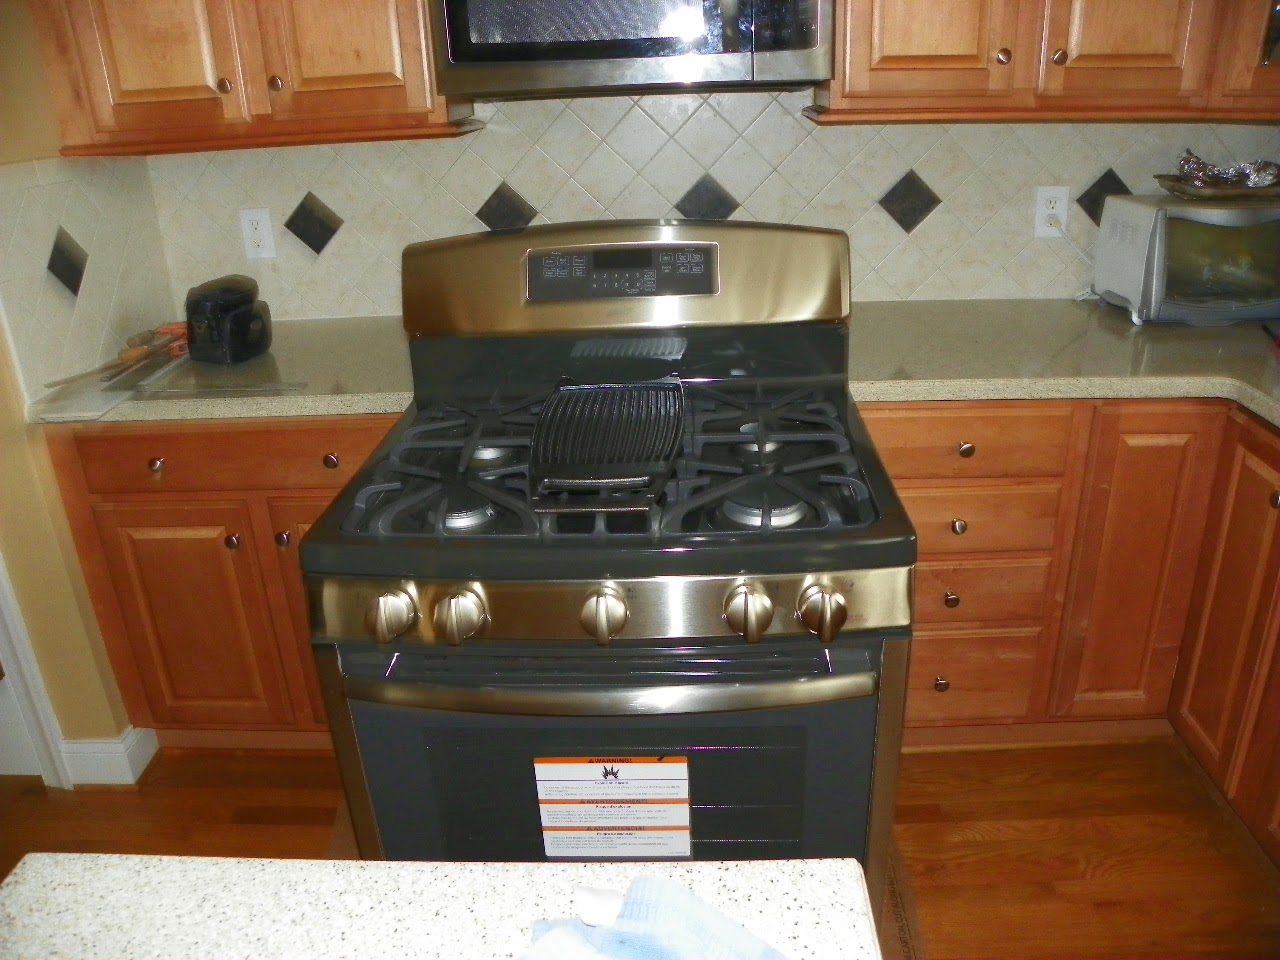 Stove Countertop Replacement : ... Repair Blog: Countertop Alteration To Retrofit Freestanding Stove in